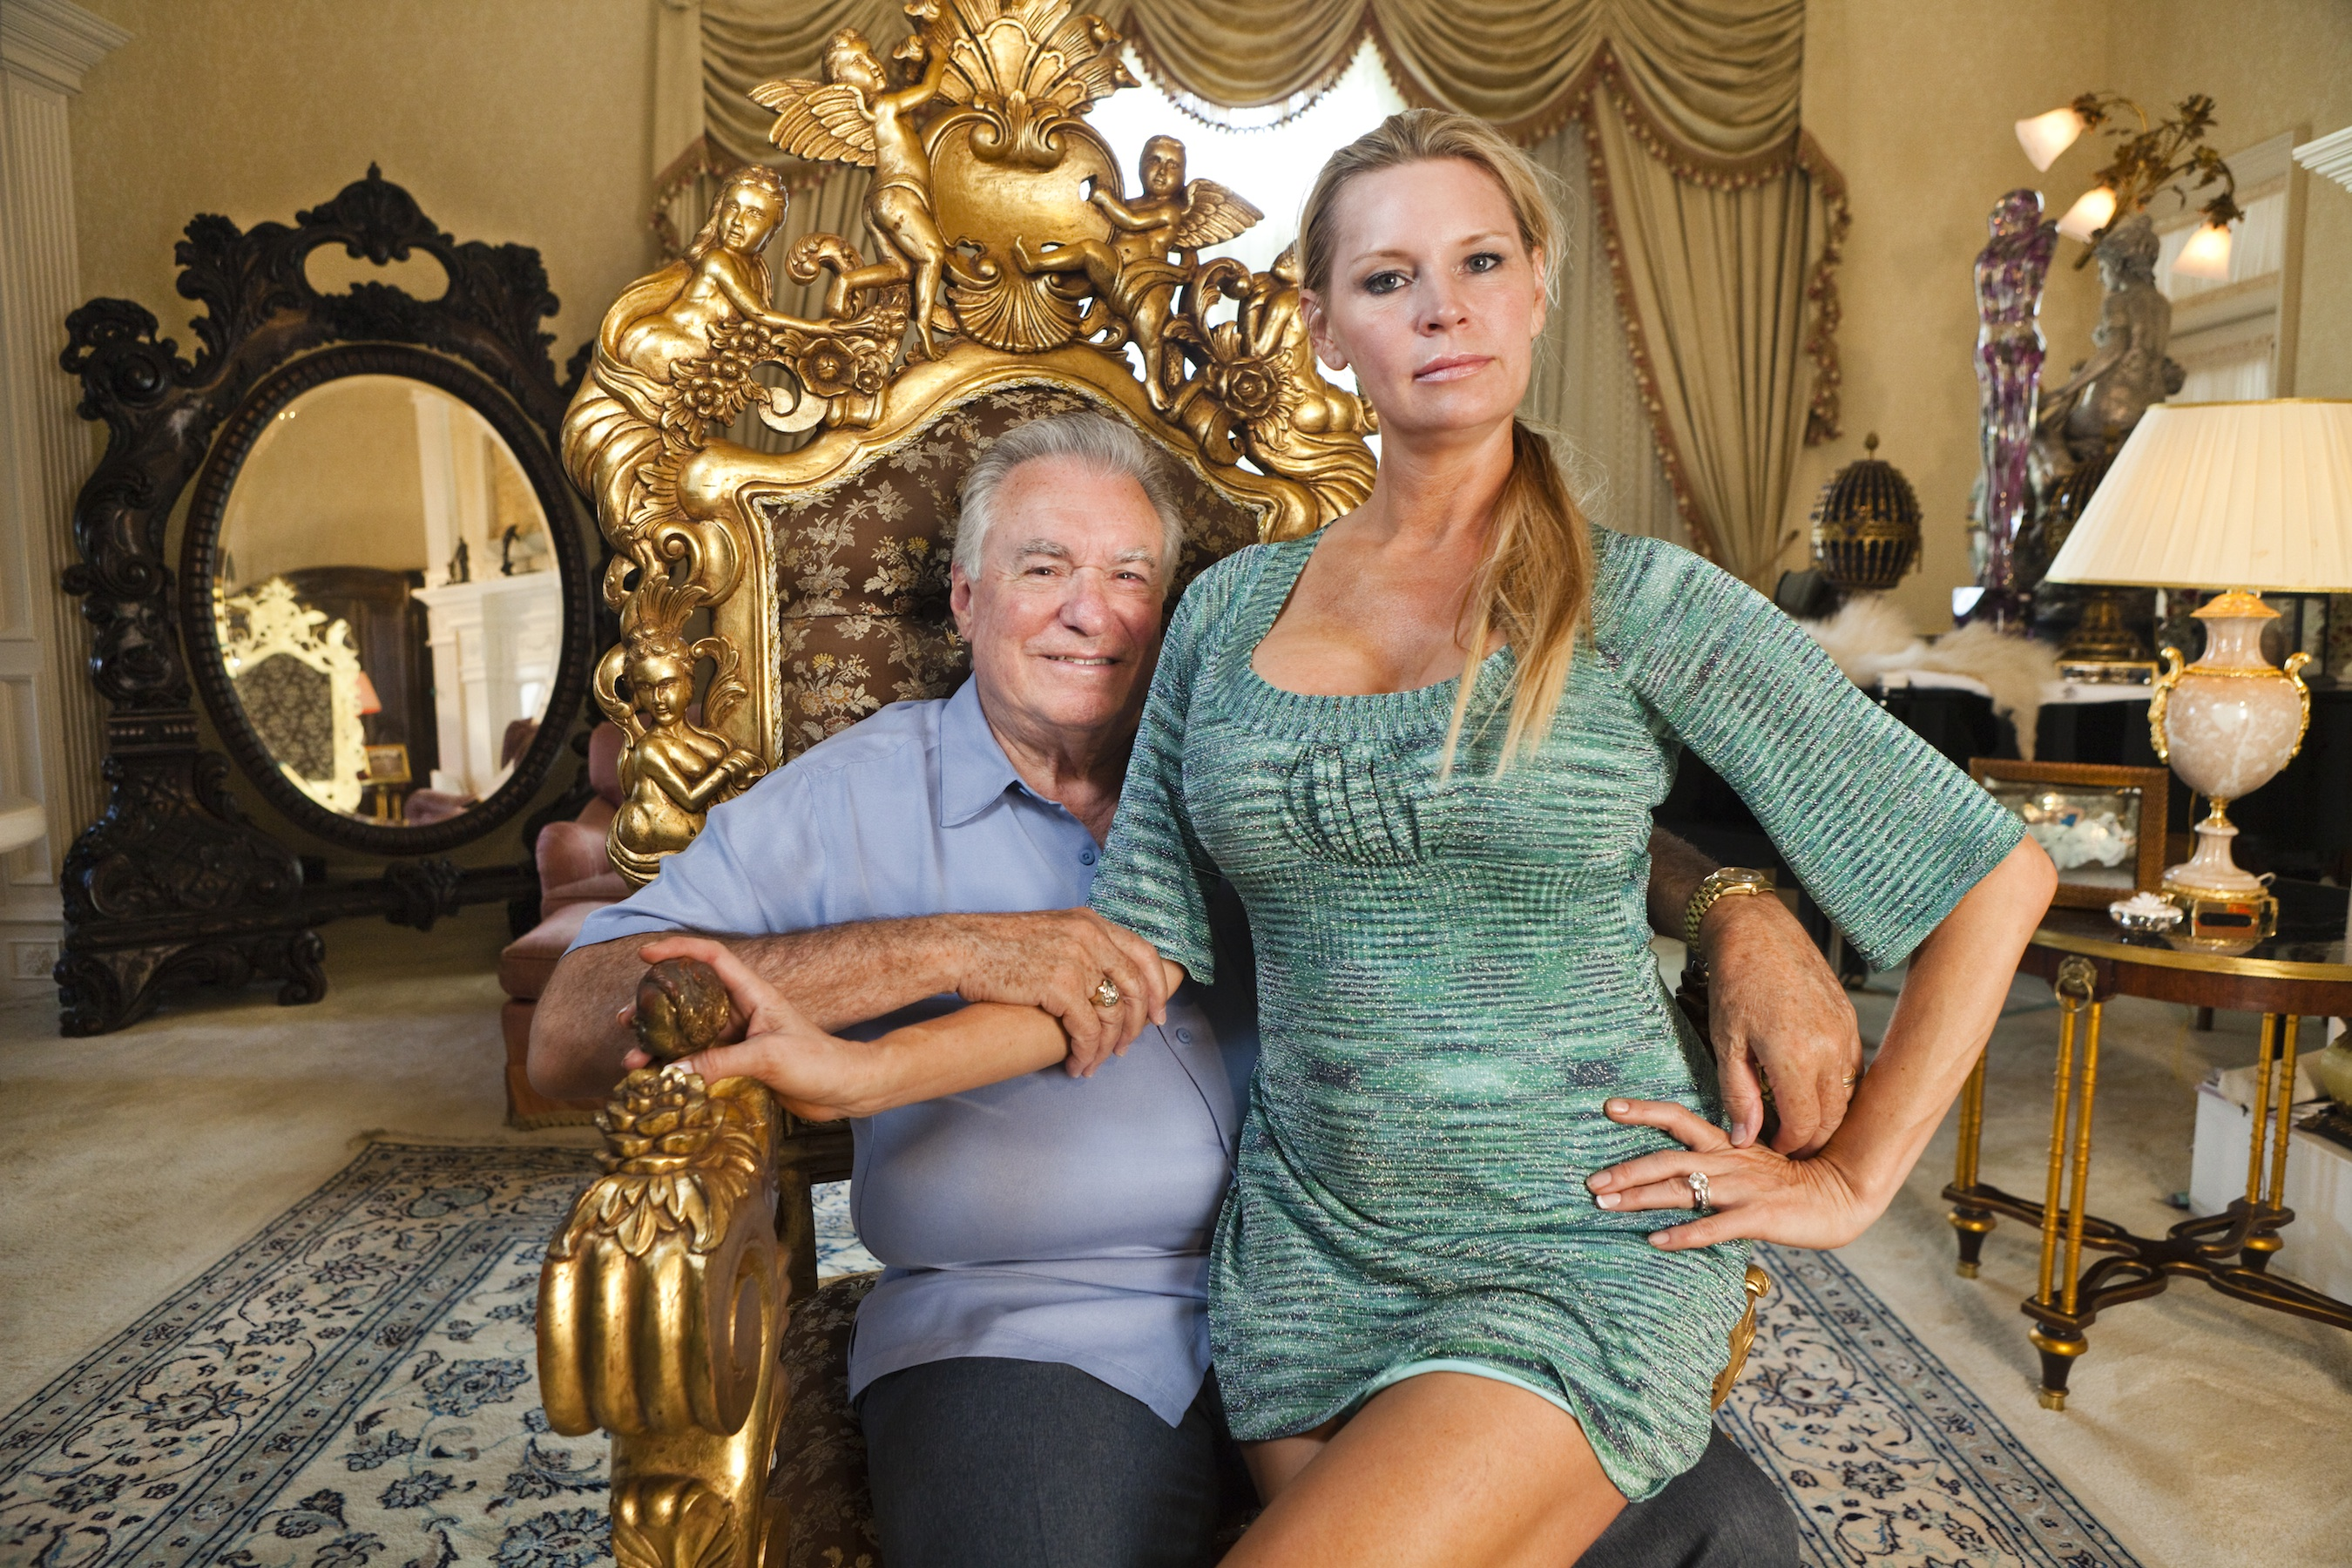 Queen of Versailles is becoming a reality show